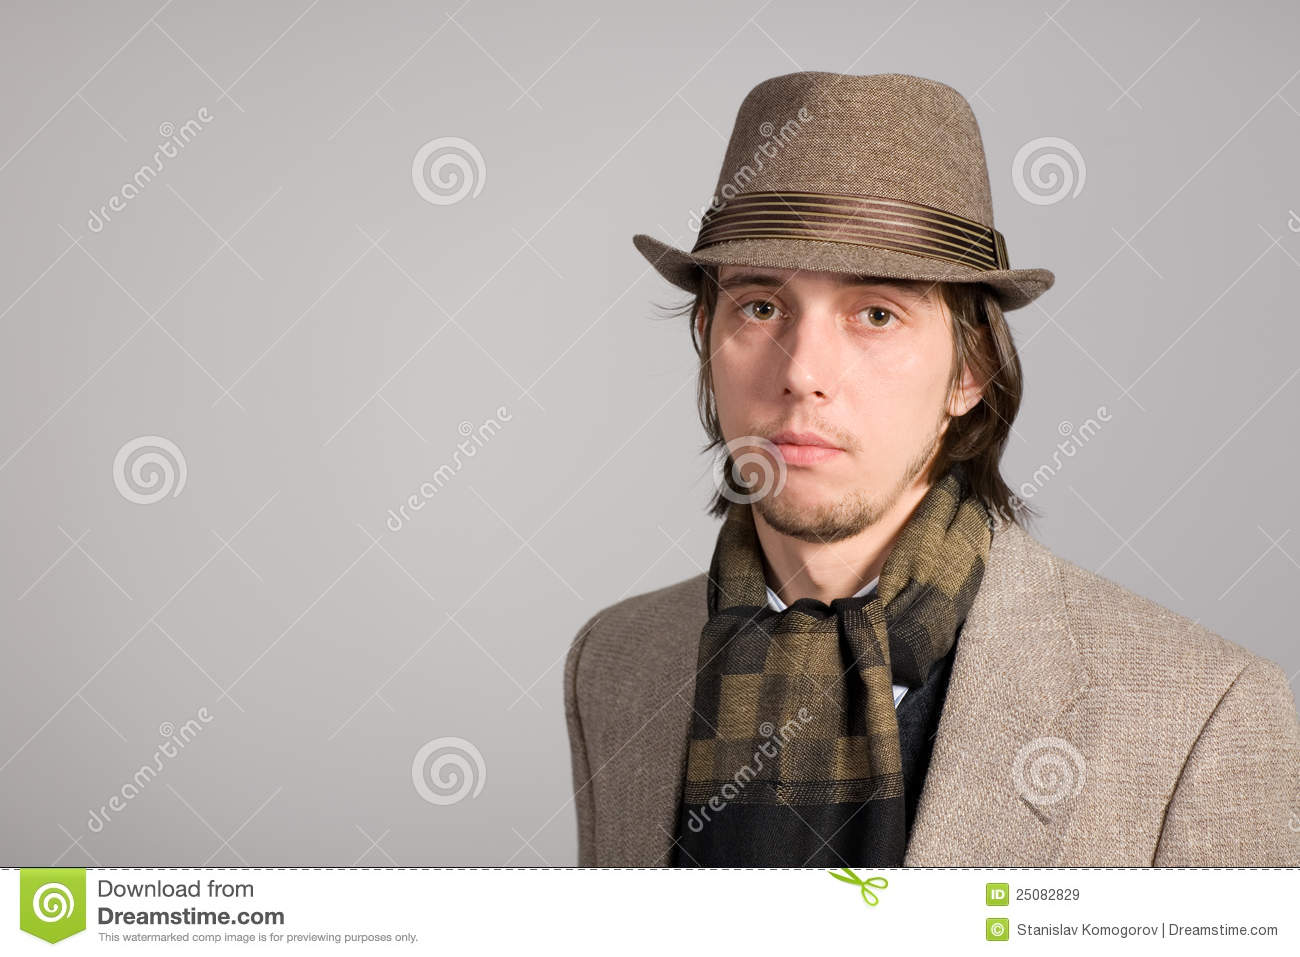 Portrait of a young man in hat